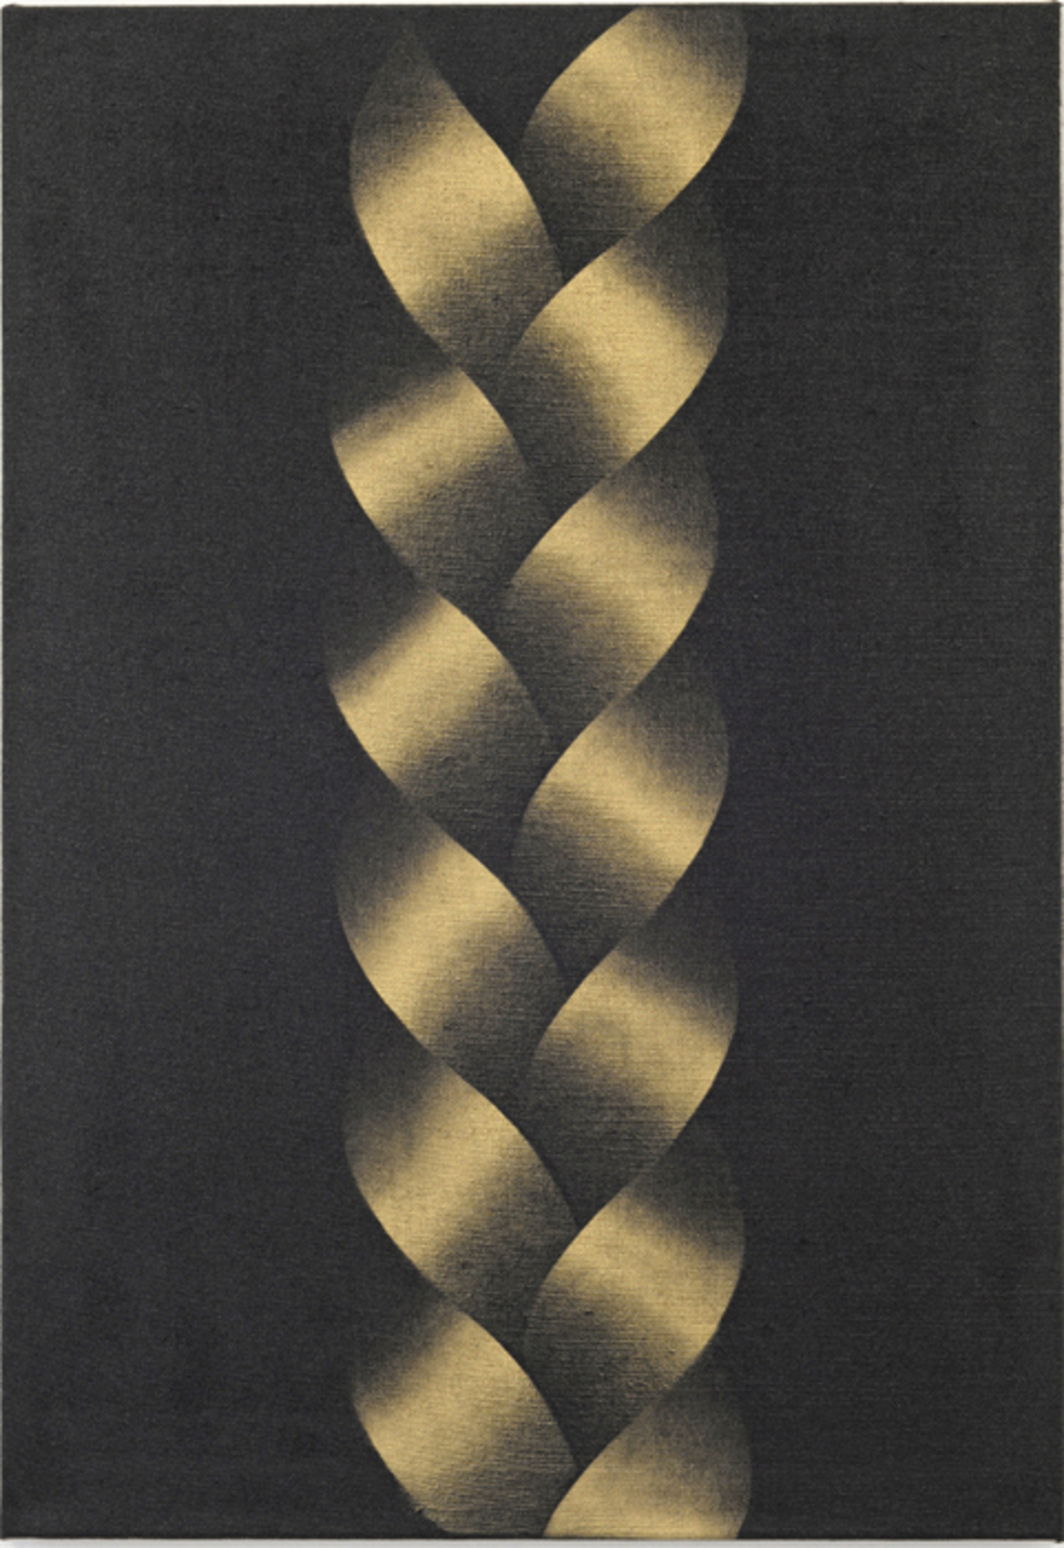 "Michael Hakimi, Zopf (Plait), 2014, spray paint and lacquer on linen, 35 × 26 3/4""."